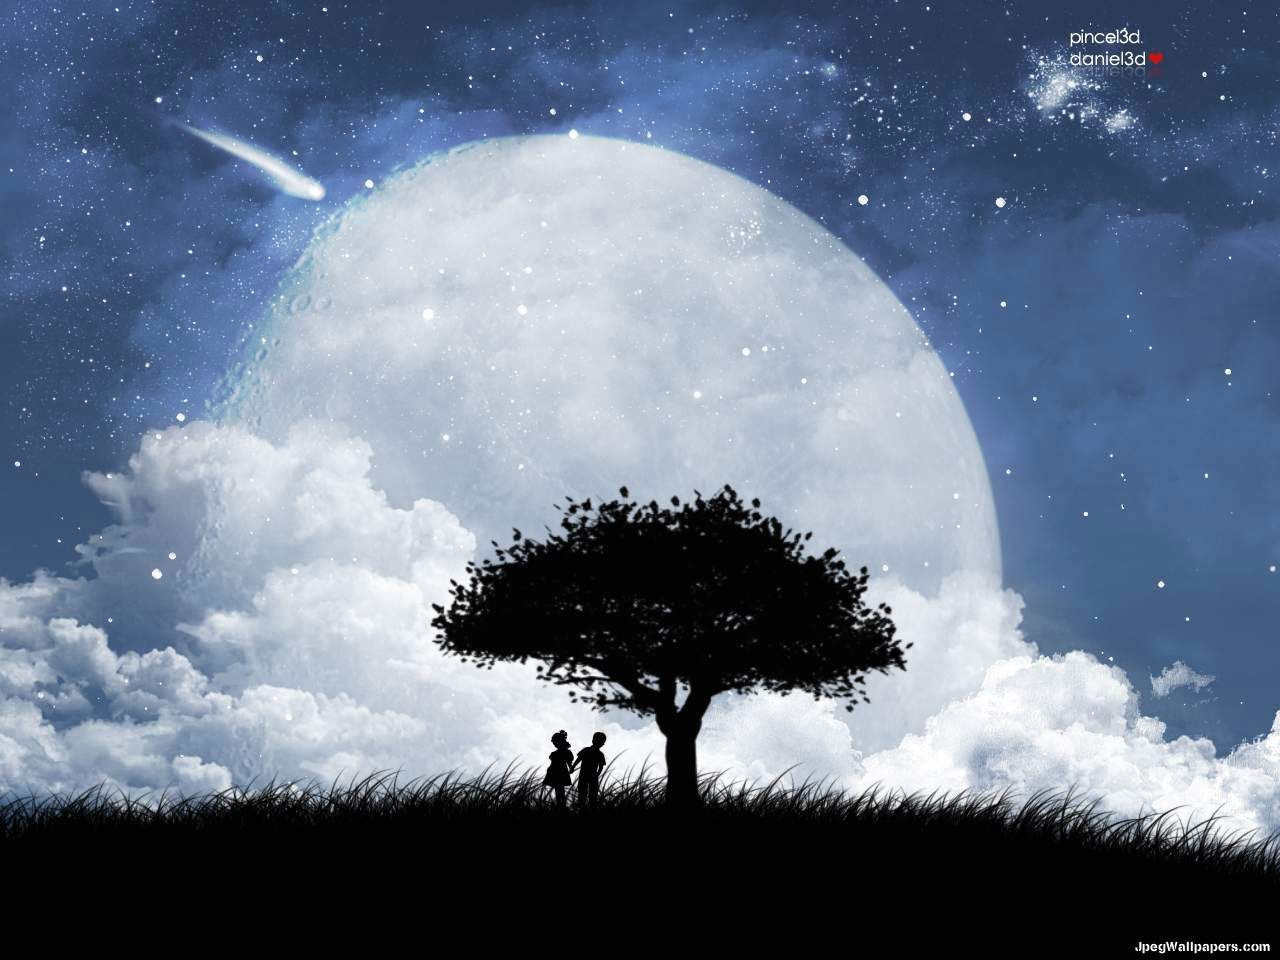 Peaceful Night Clouds Couple Moon People Shooting Star Silhouette Sky Tree Vector Moon Images Love Wallpaper Moon Pictures Hd wallpaper trees silhouette night moon